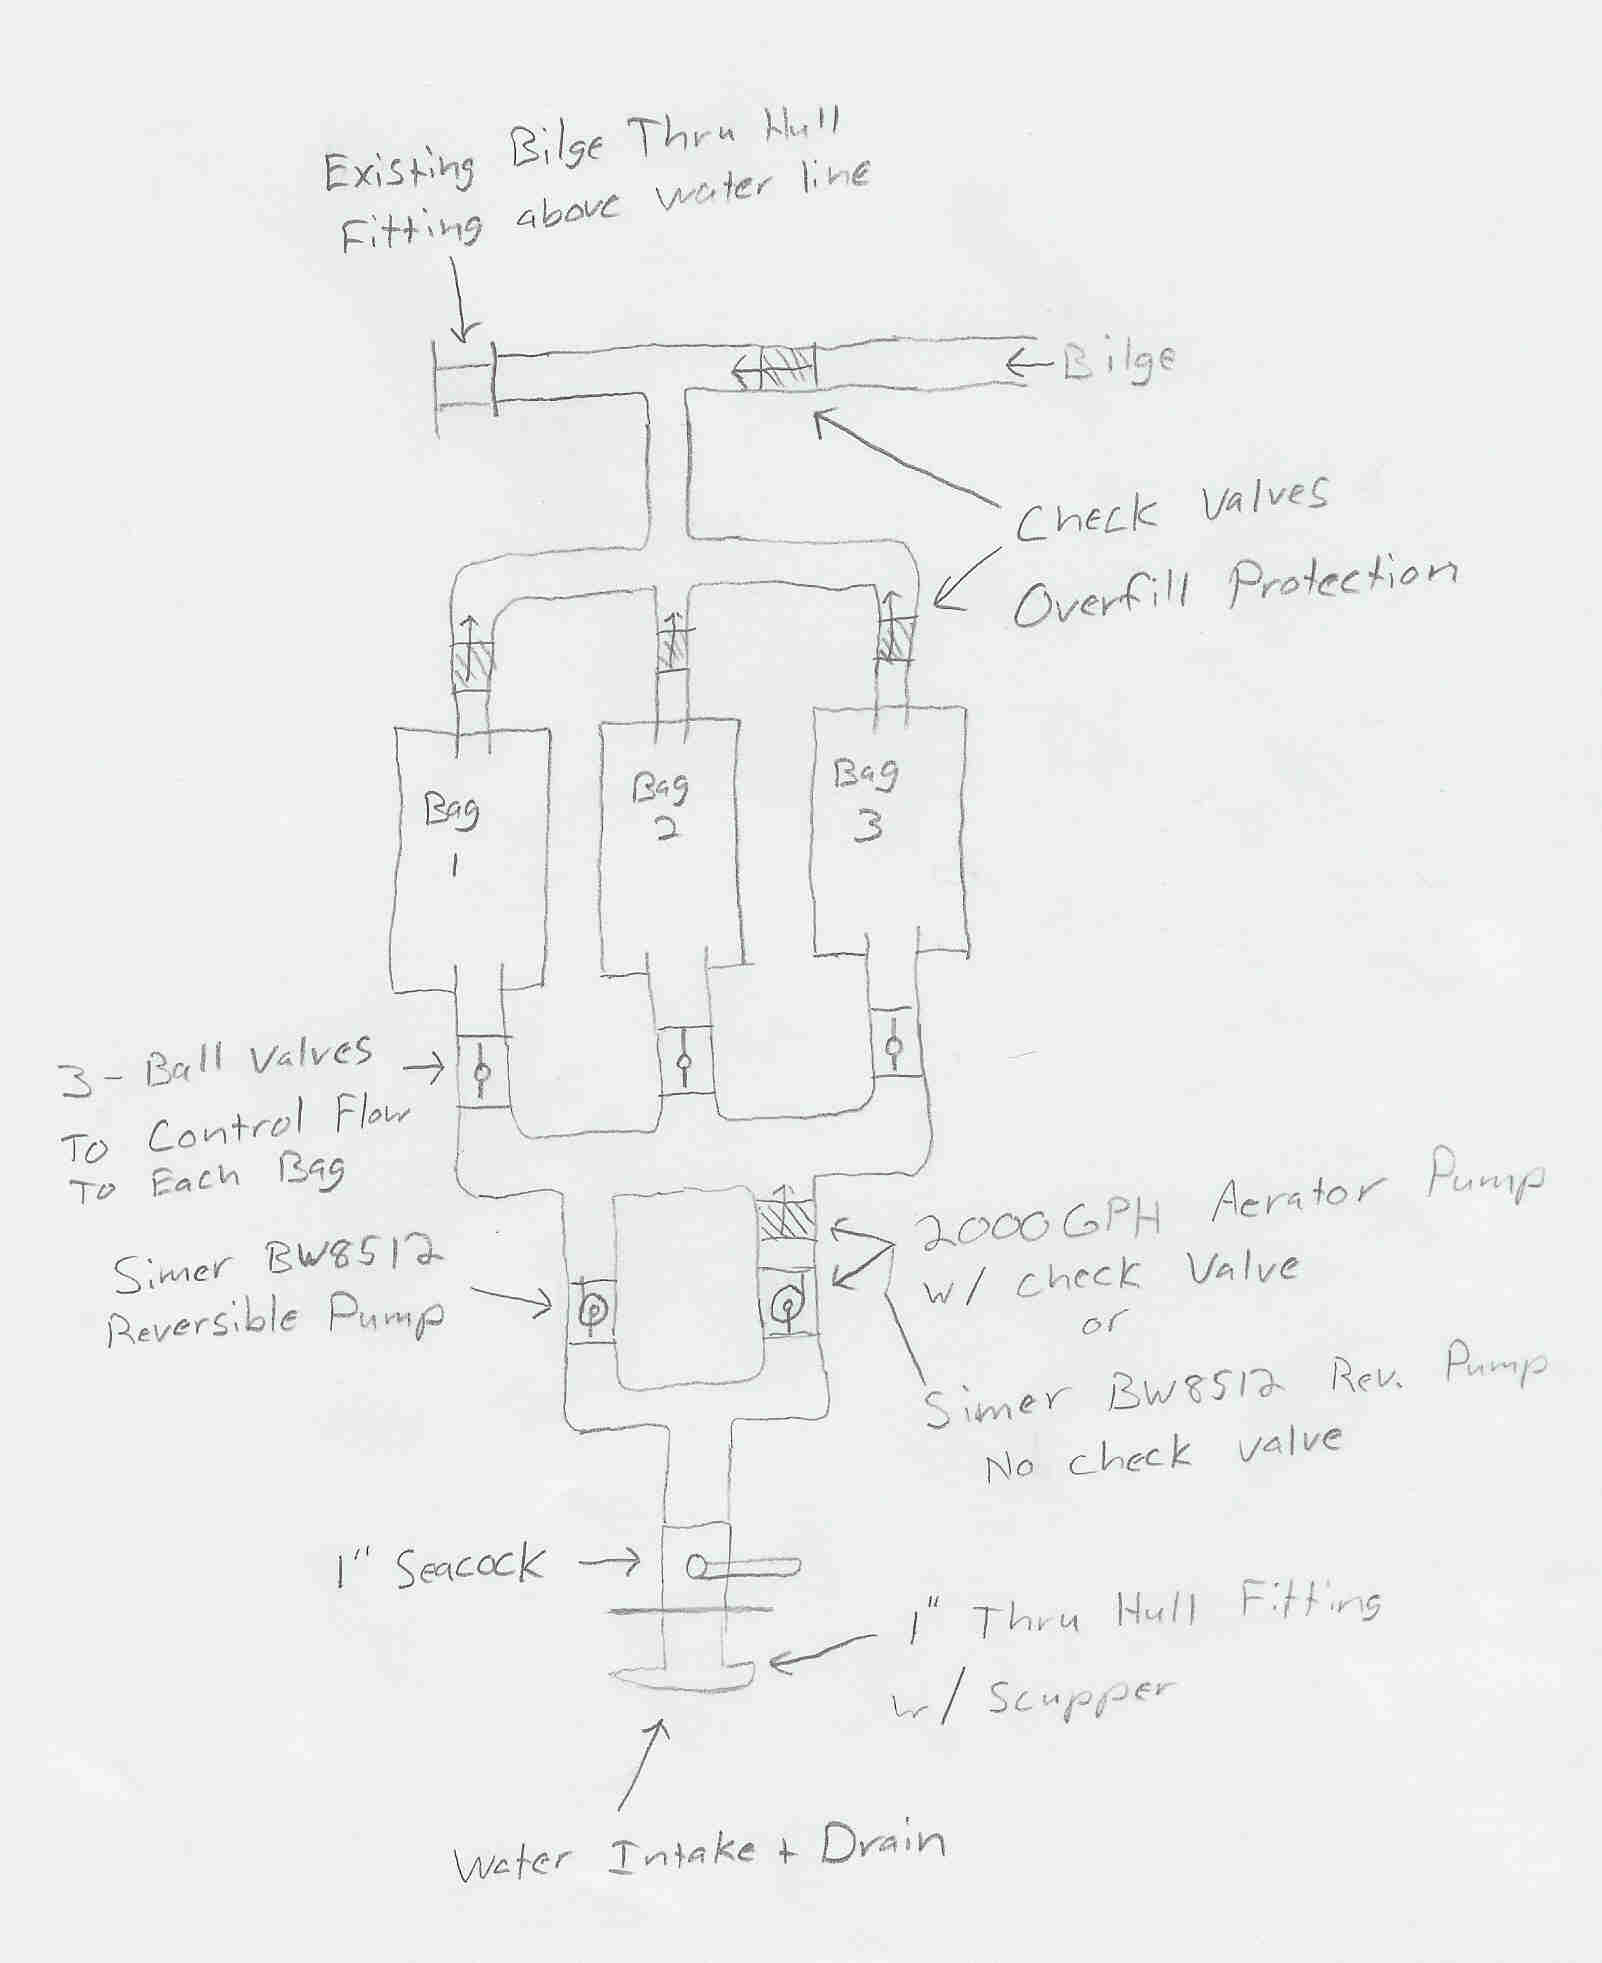 simer pump wiring diagram   25 wiring diagram images